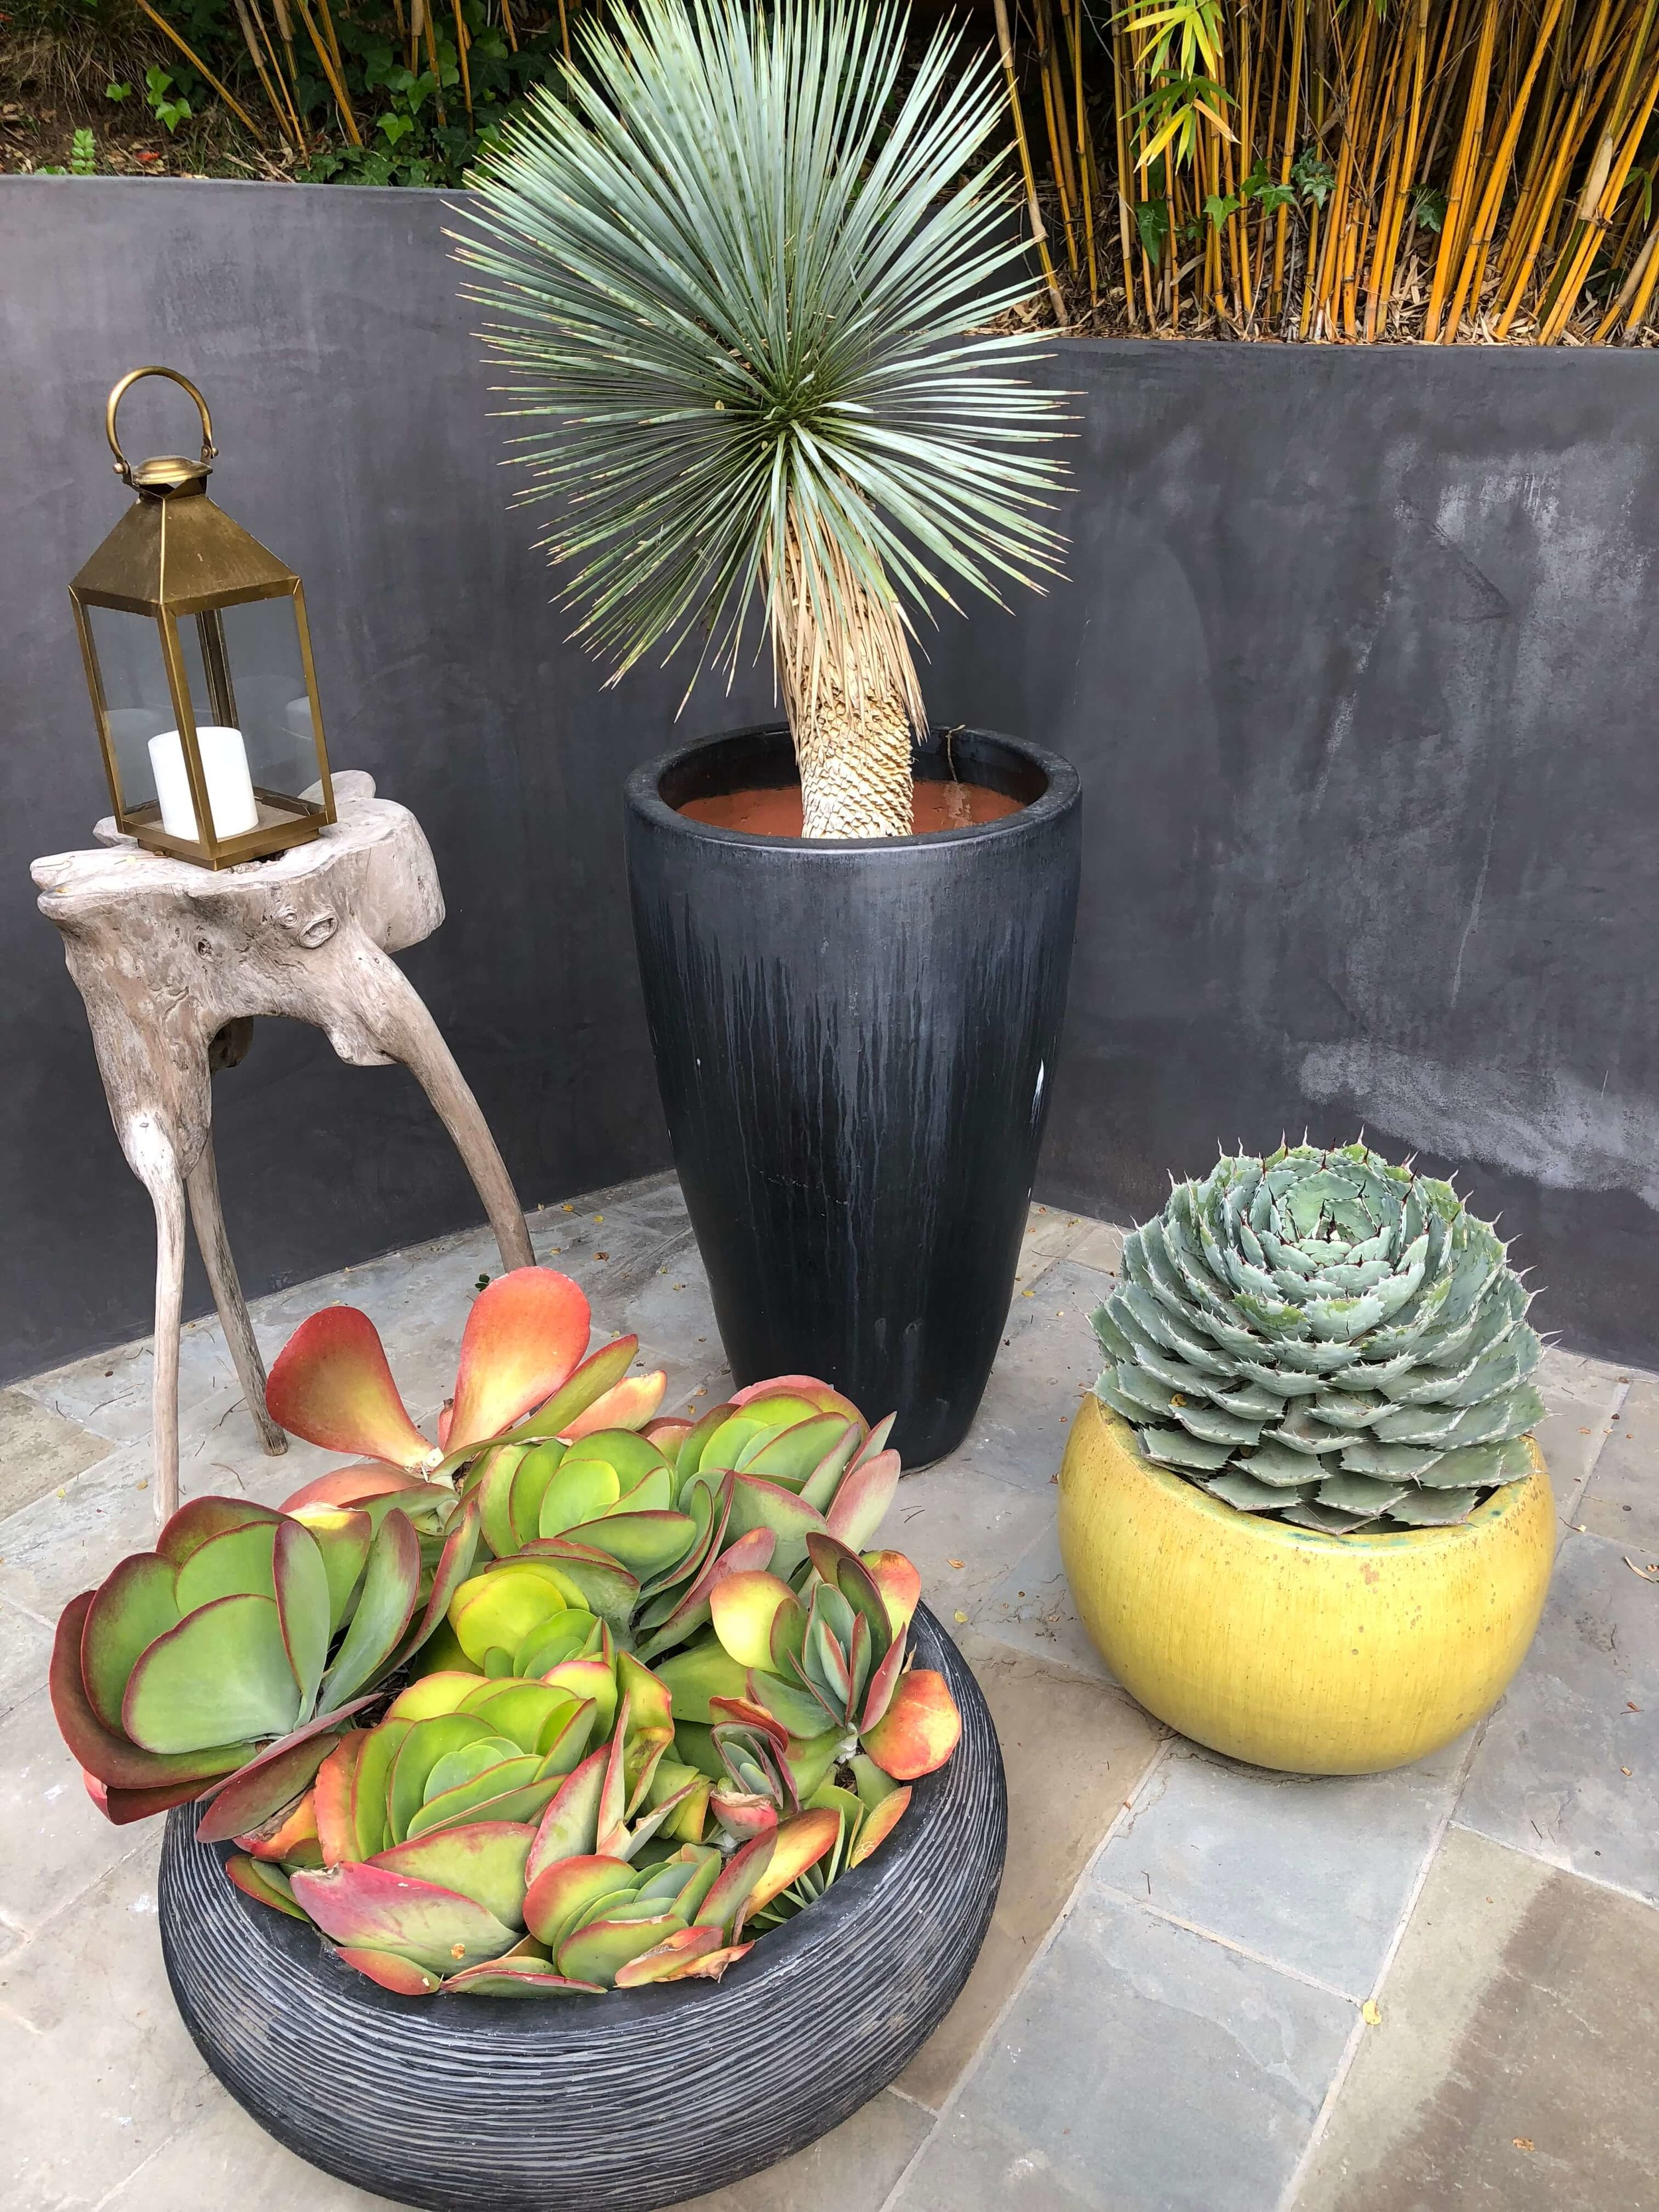 Dwell on Design home tour patio containers with succulents #succulents #patio